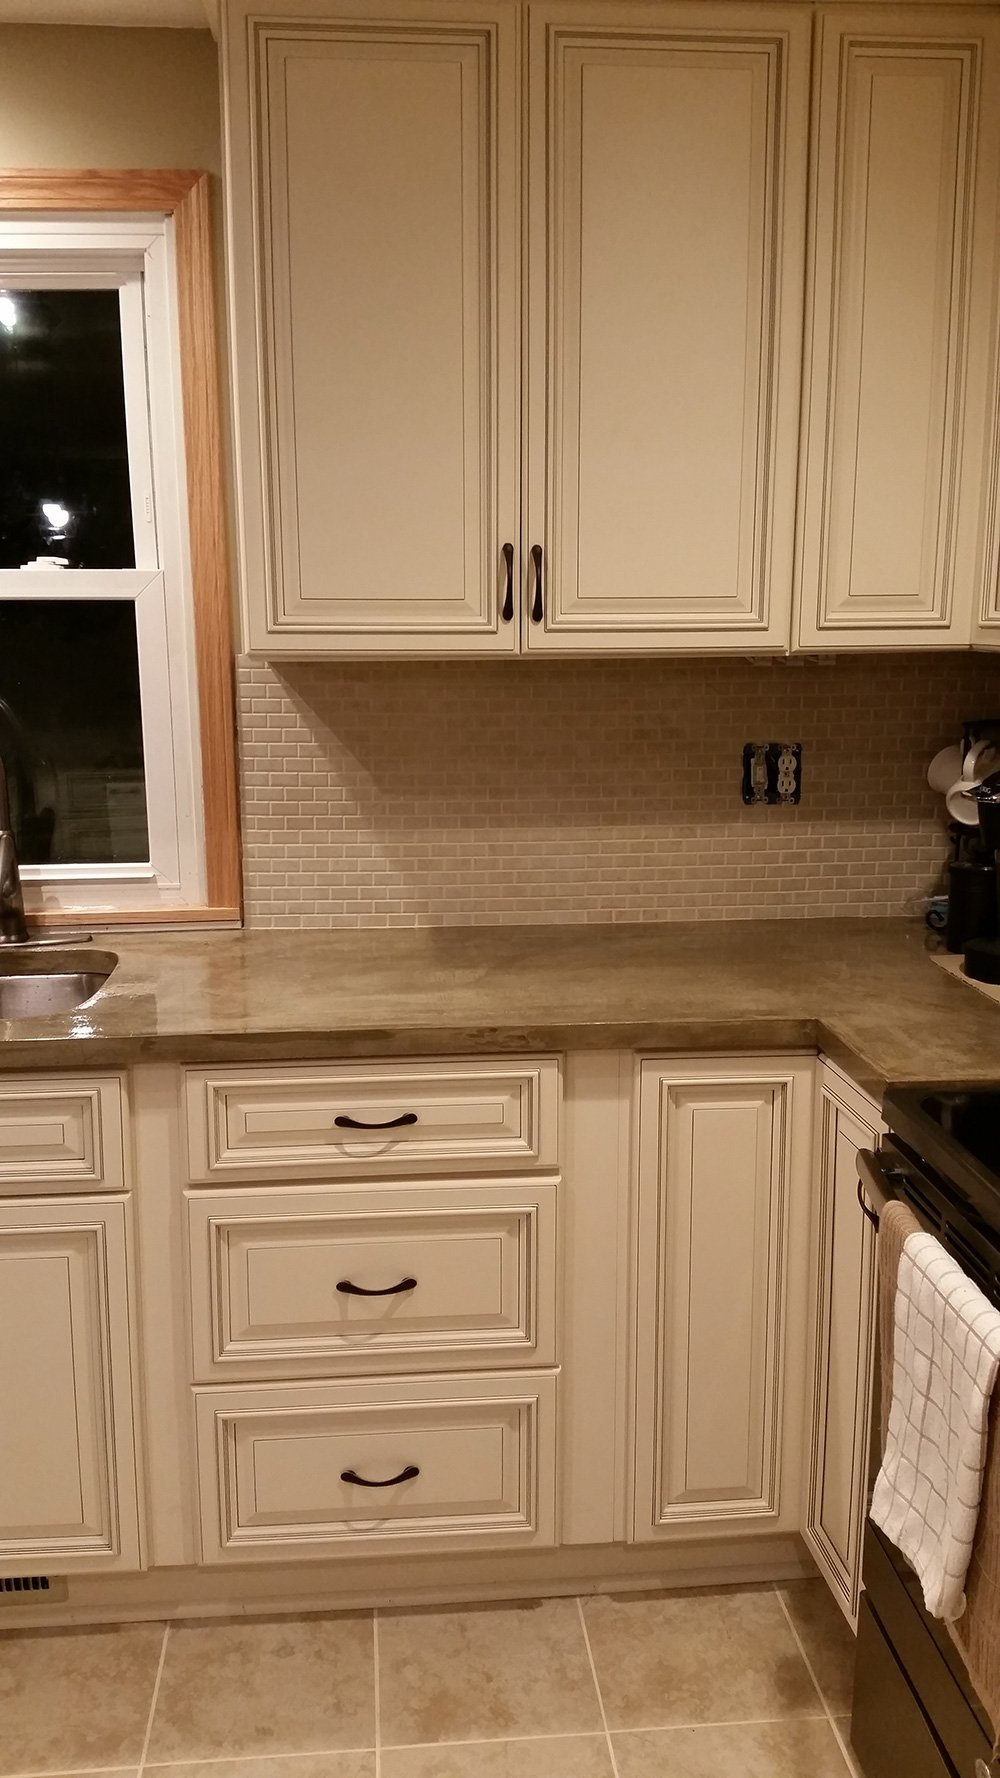 Buy pearl kitchen cabinets online for Best kitchen cabinets online